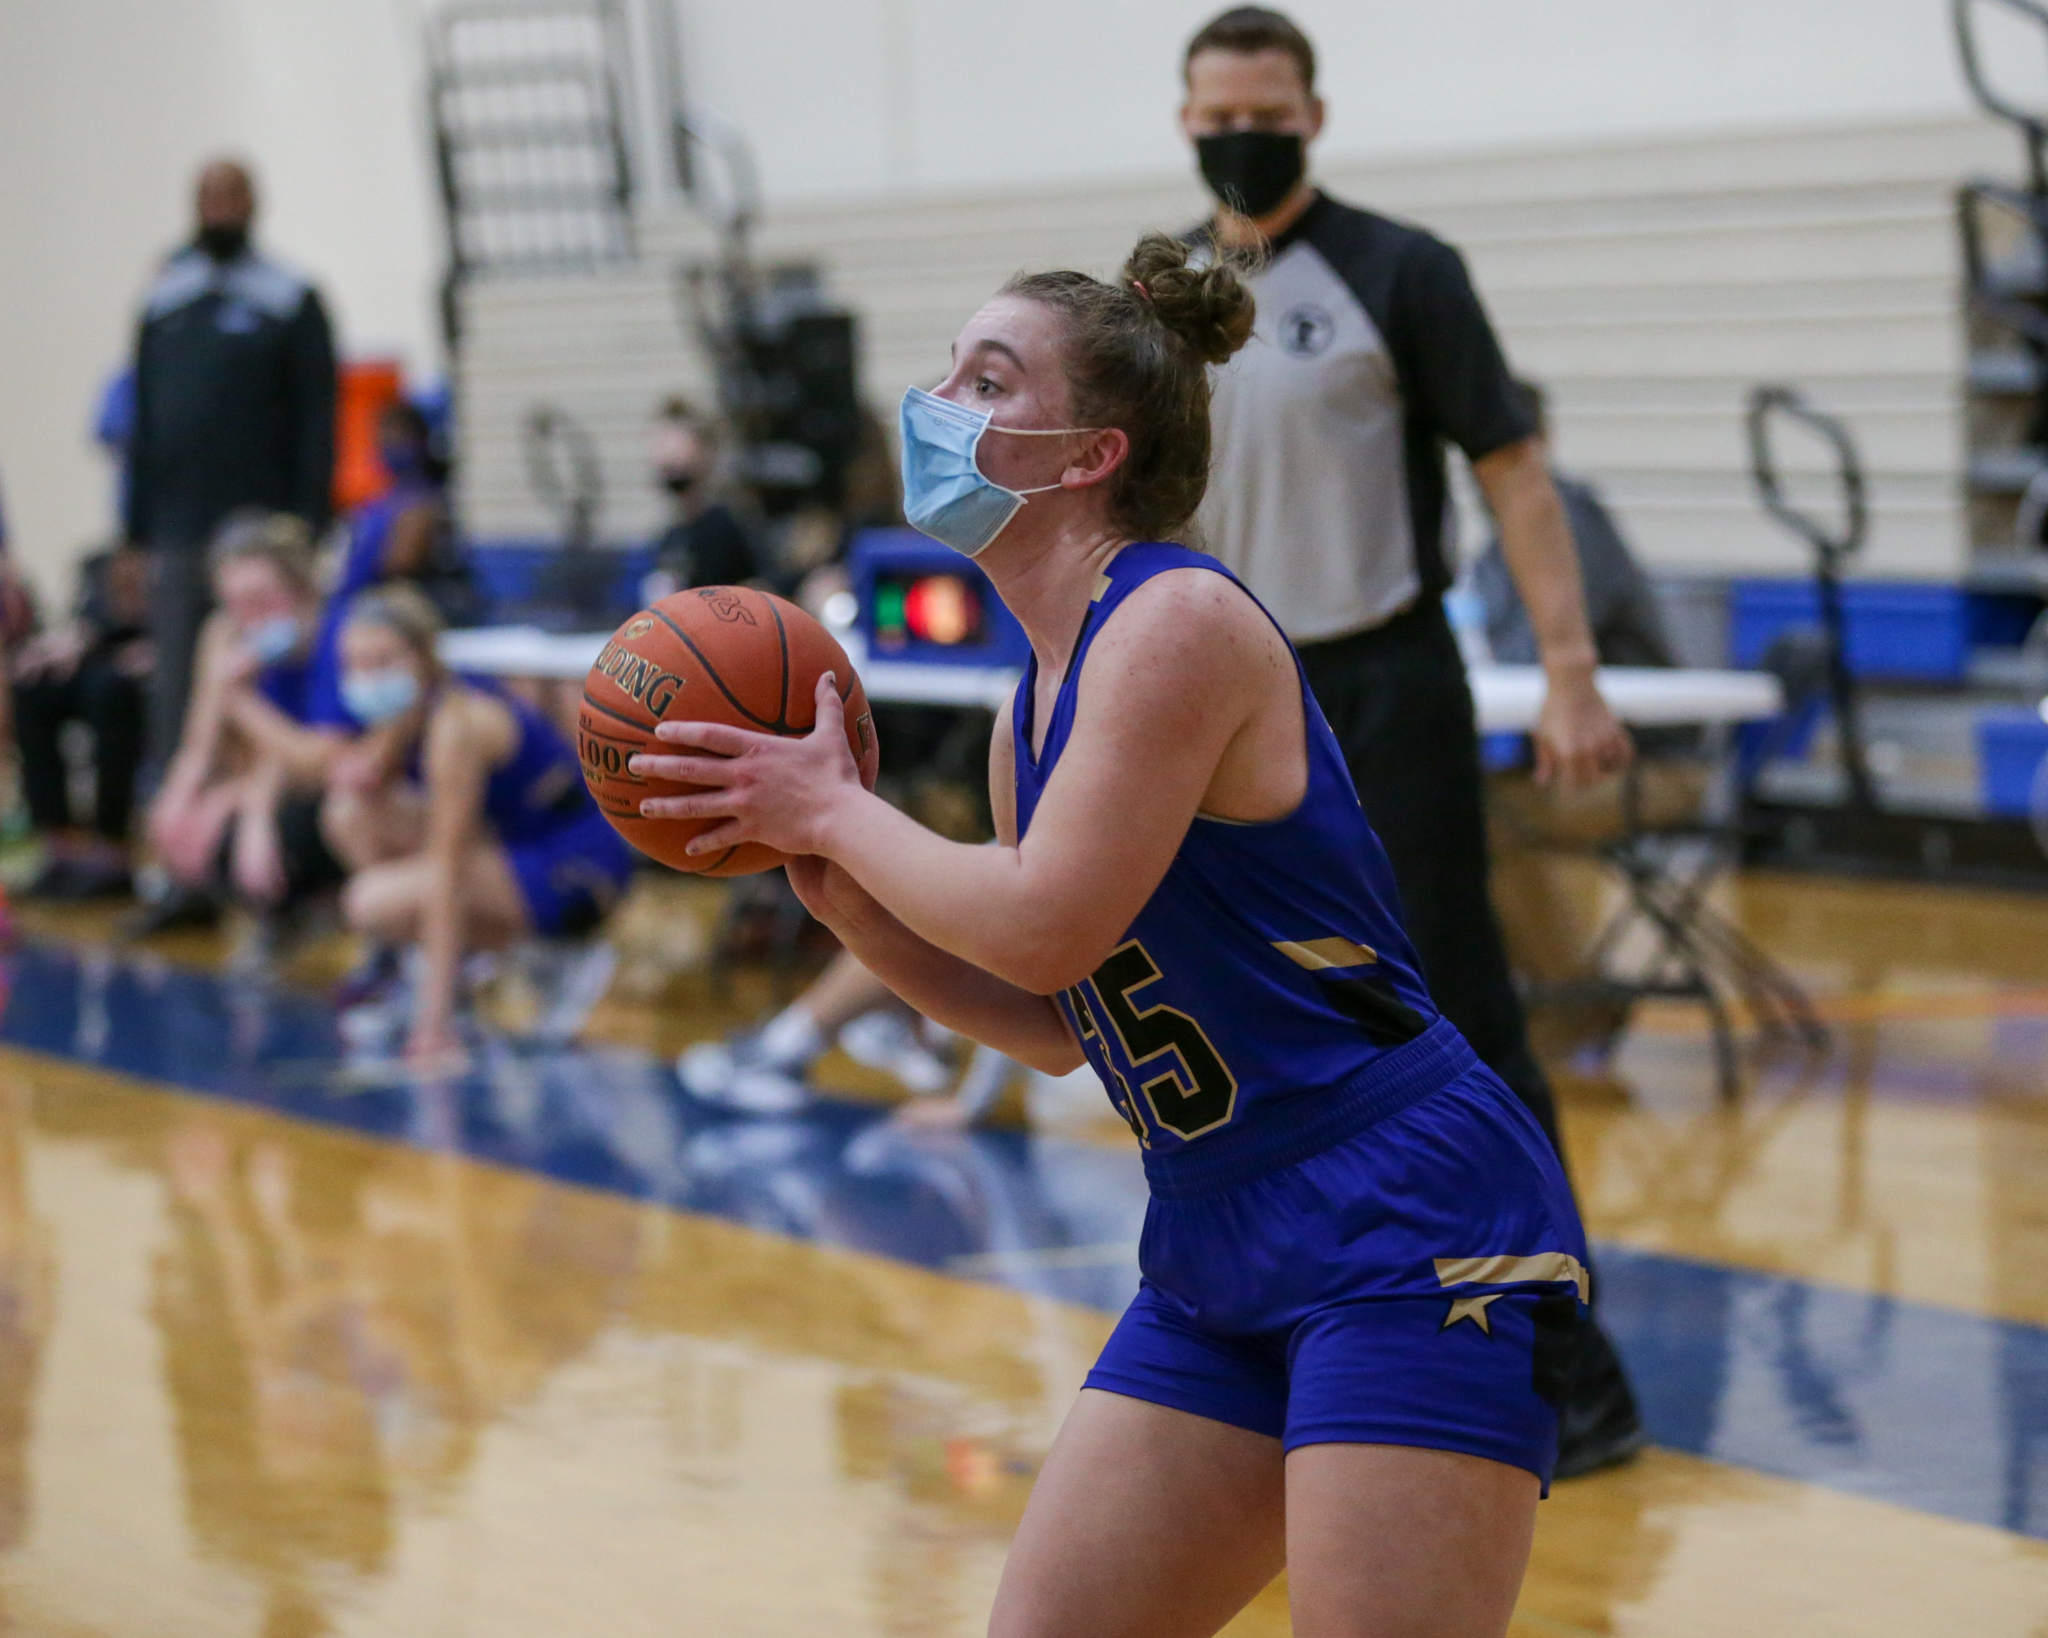 Holy Angels' Jenna Buer (35) spots up for a three-point attempt against DeLaSalle Friday night. Buer had 16 points in the Stars' 96-69 victory over the Islanders in Richfield. Photo by Jeff Lawler, SportsEngine